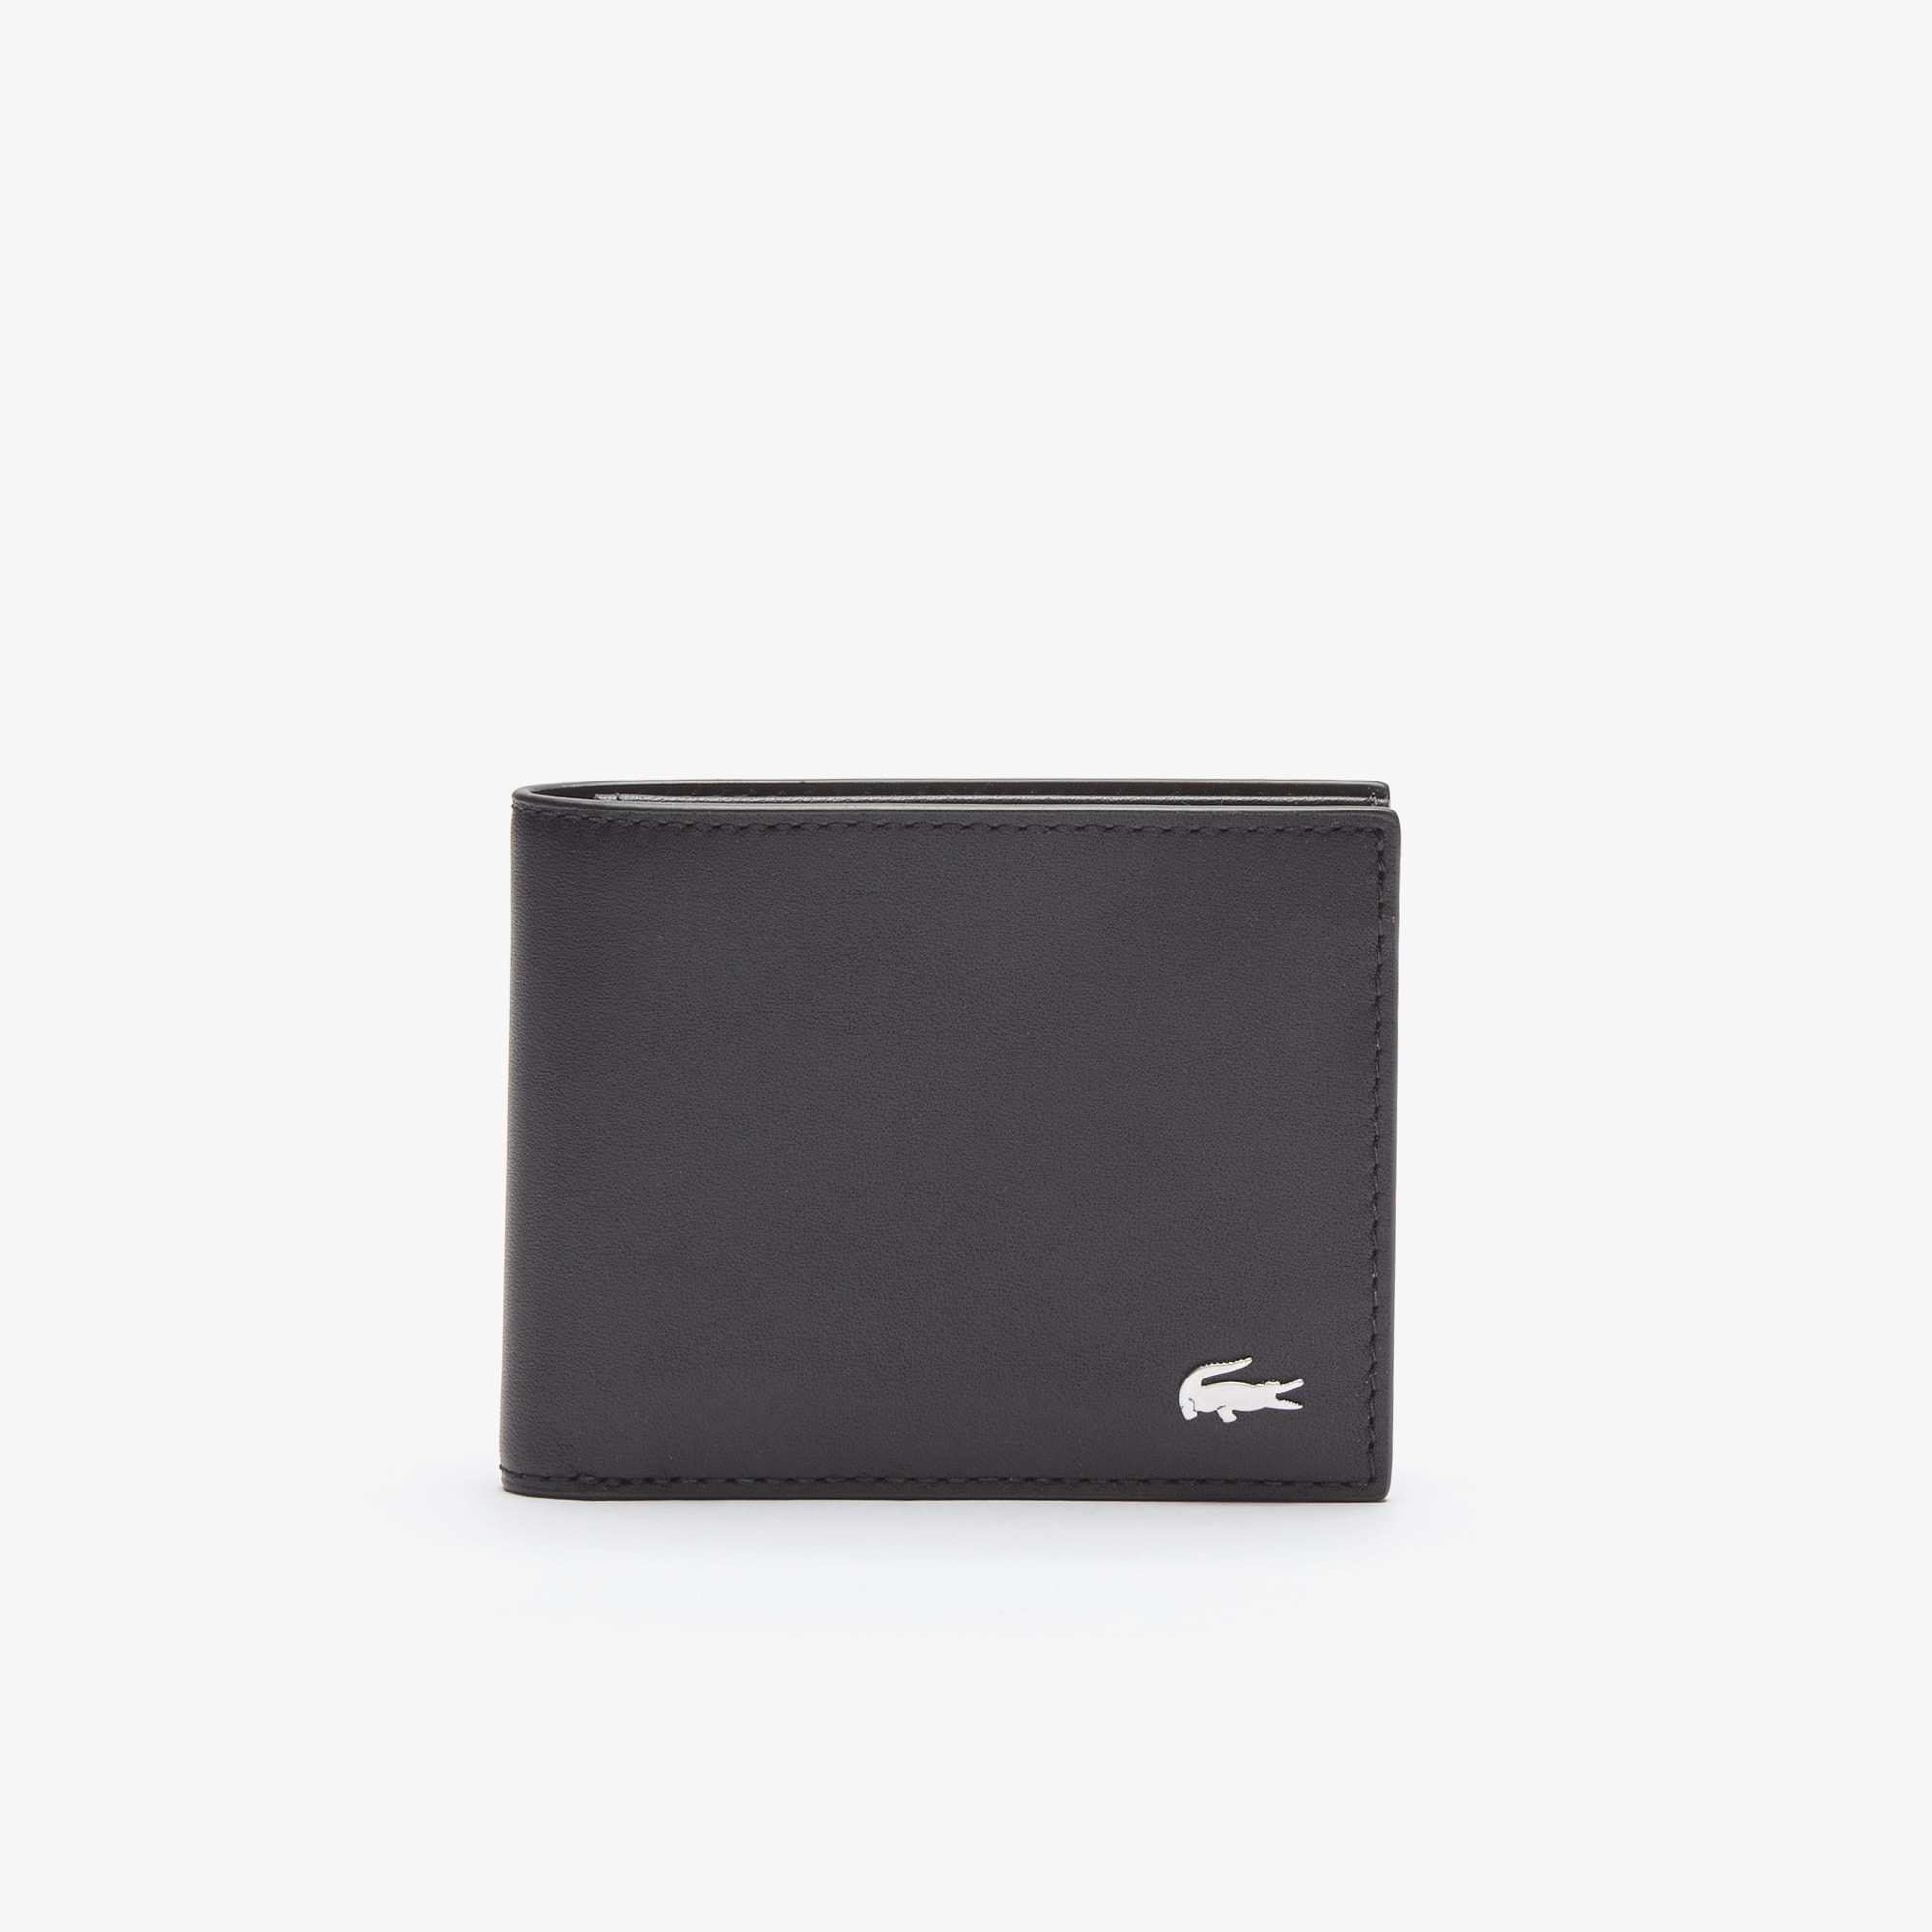 99c1f172ea3 Men's Fitzgerald billfold in leather with ID card holder | LACOSTE